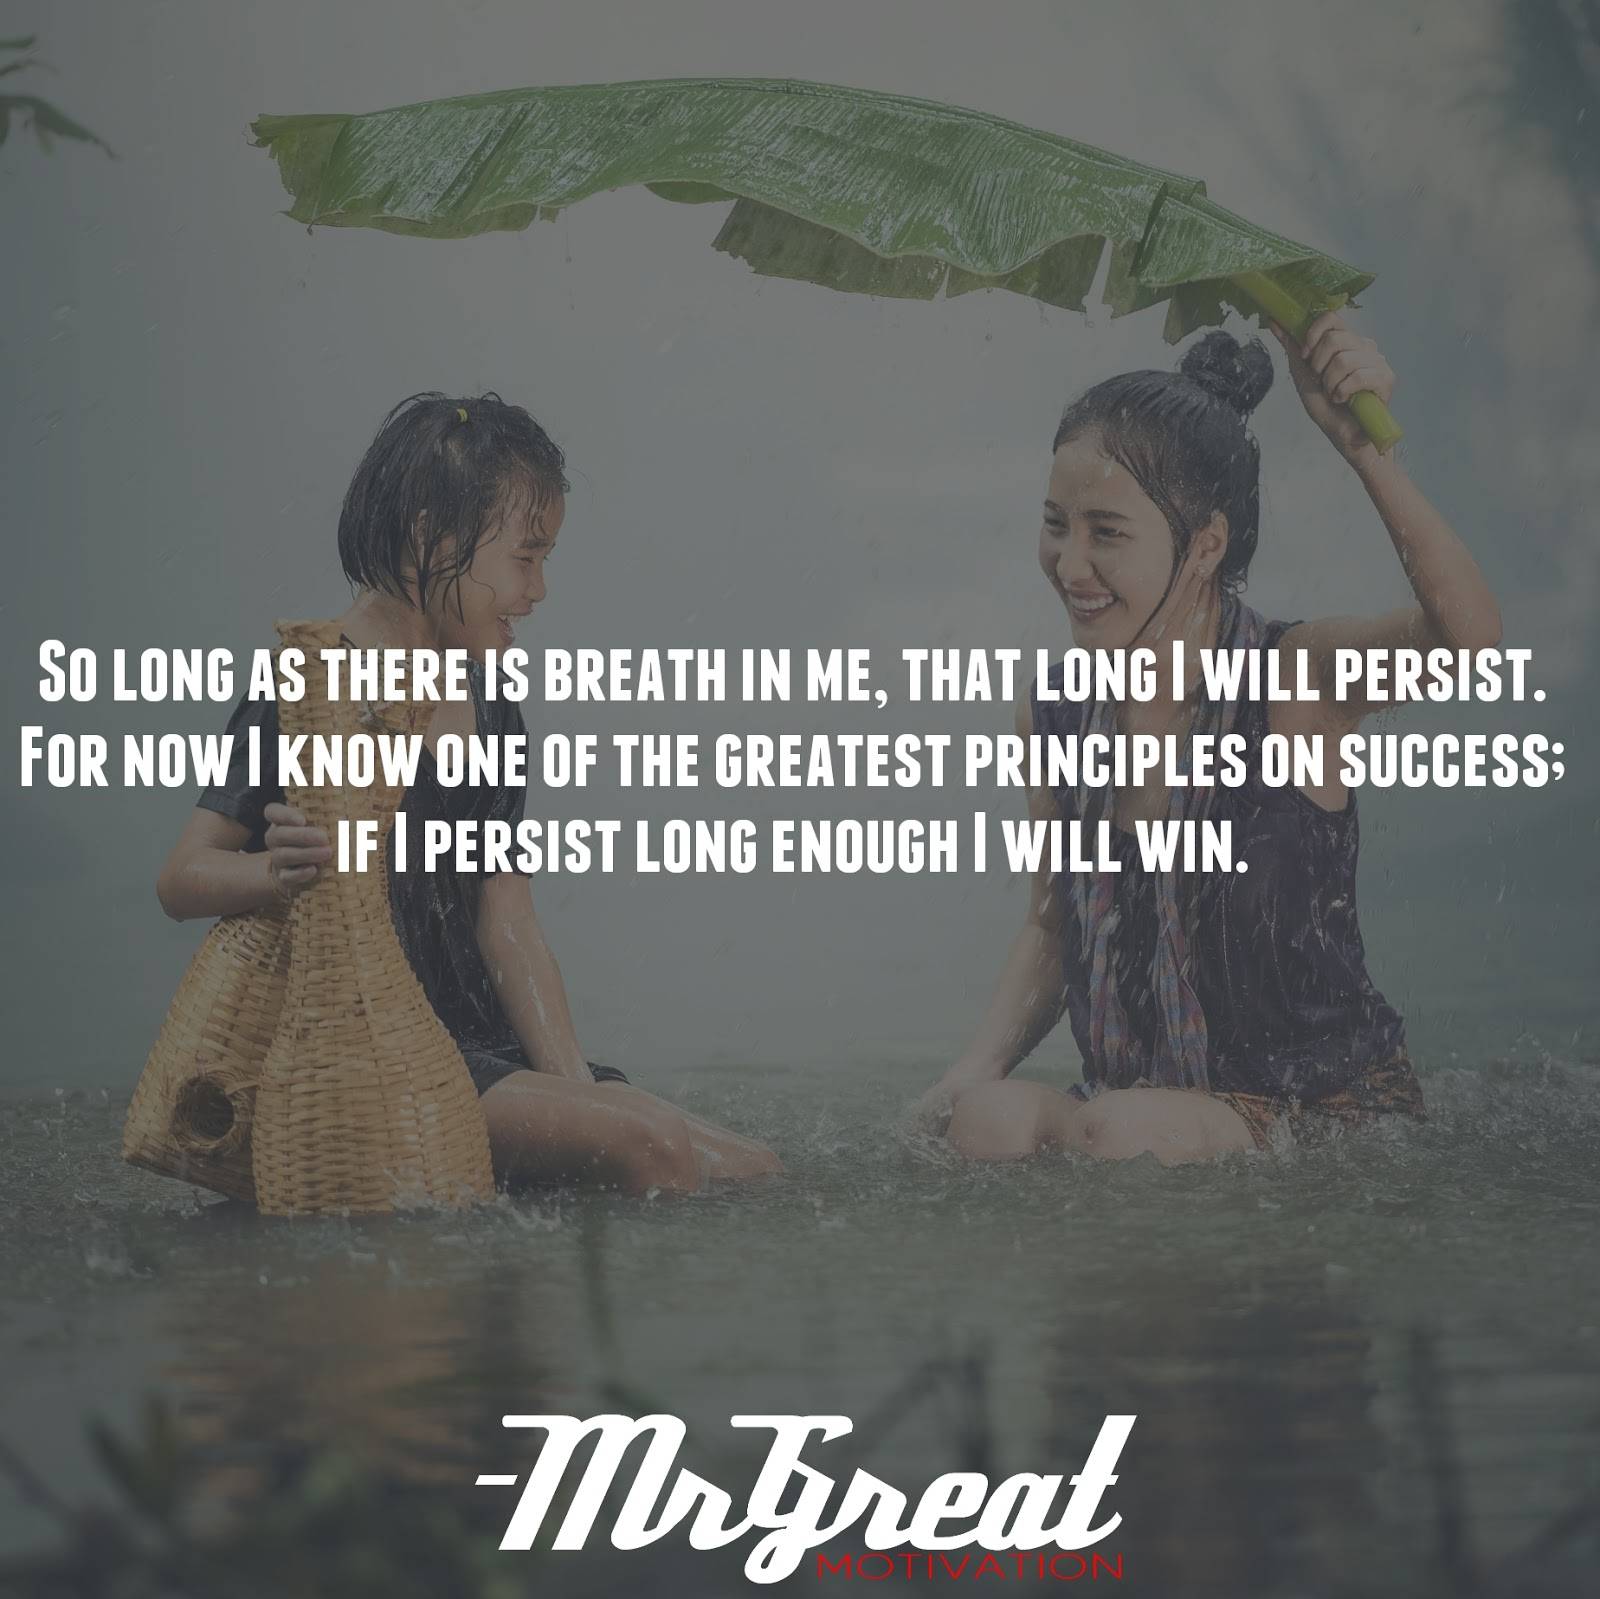 So long as there is breath in me, that long I will persist. For now I know one of the greatest principles on success; if I persist long enough I will win. - Og Mandino